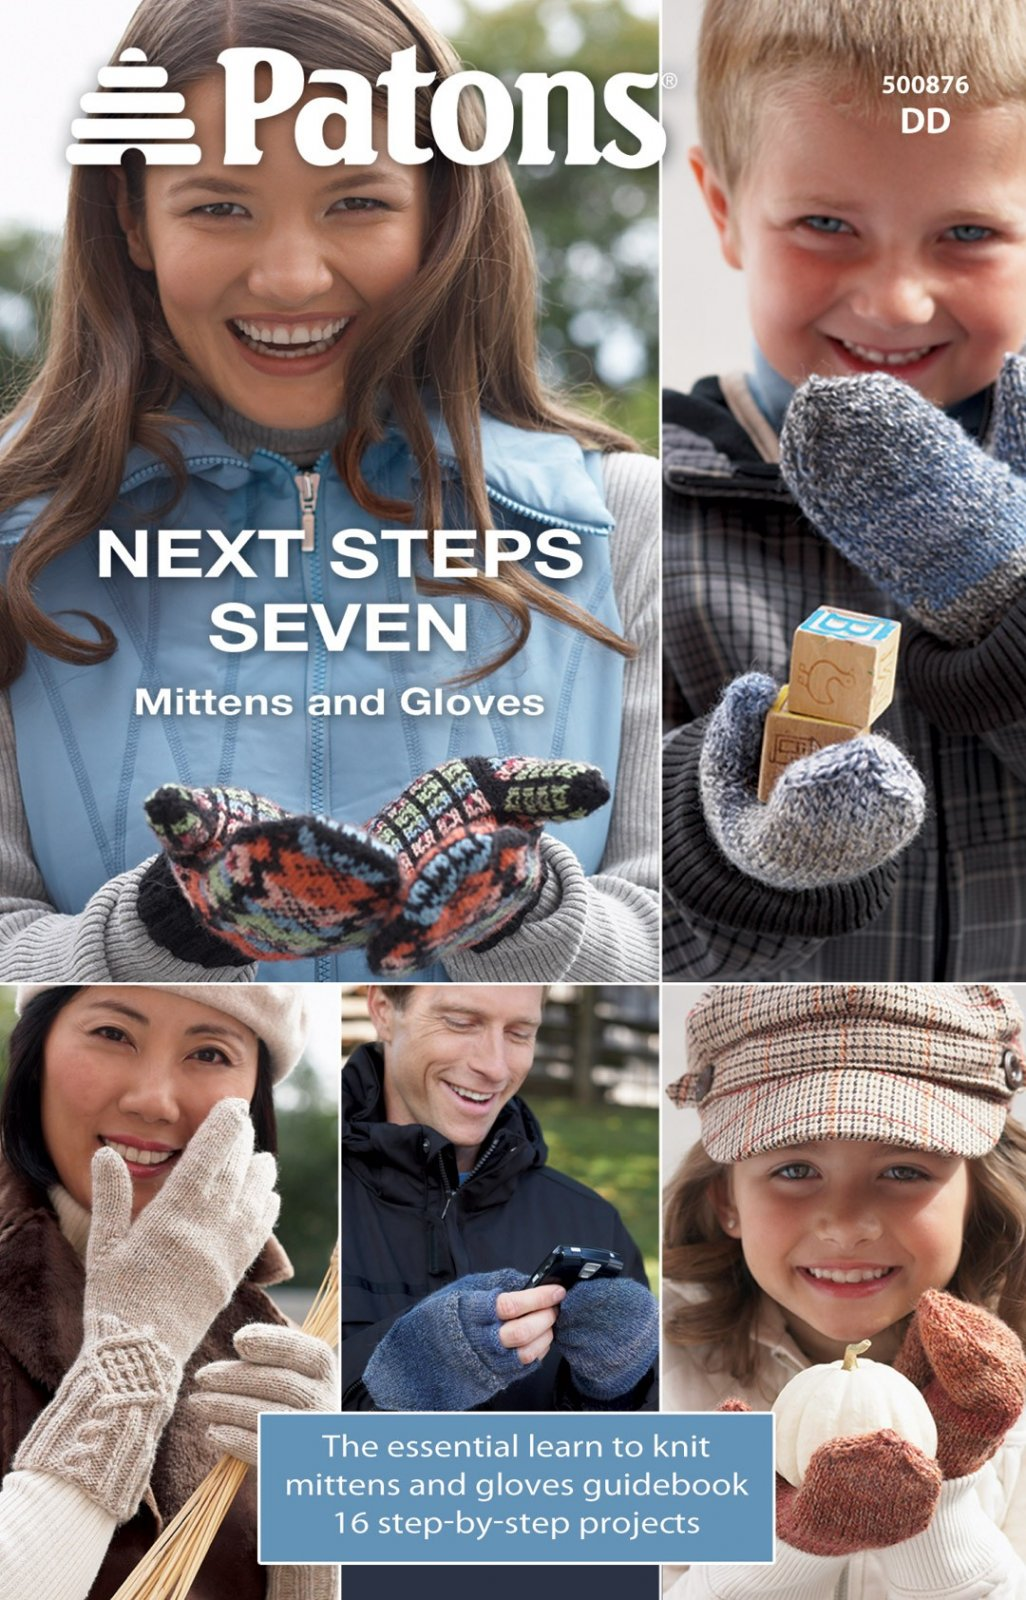 Mittens and Gloves - Patons Next Steps 7